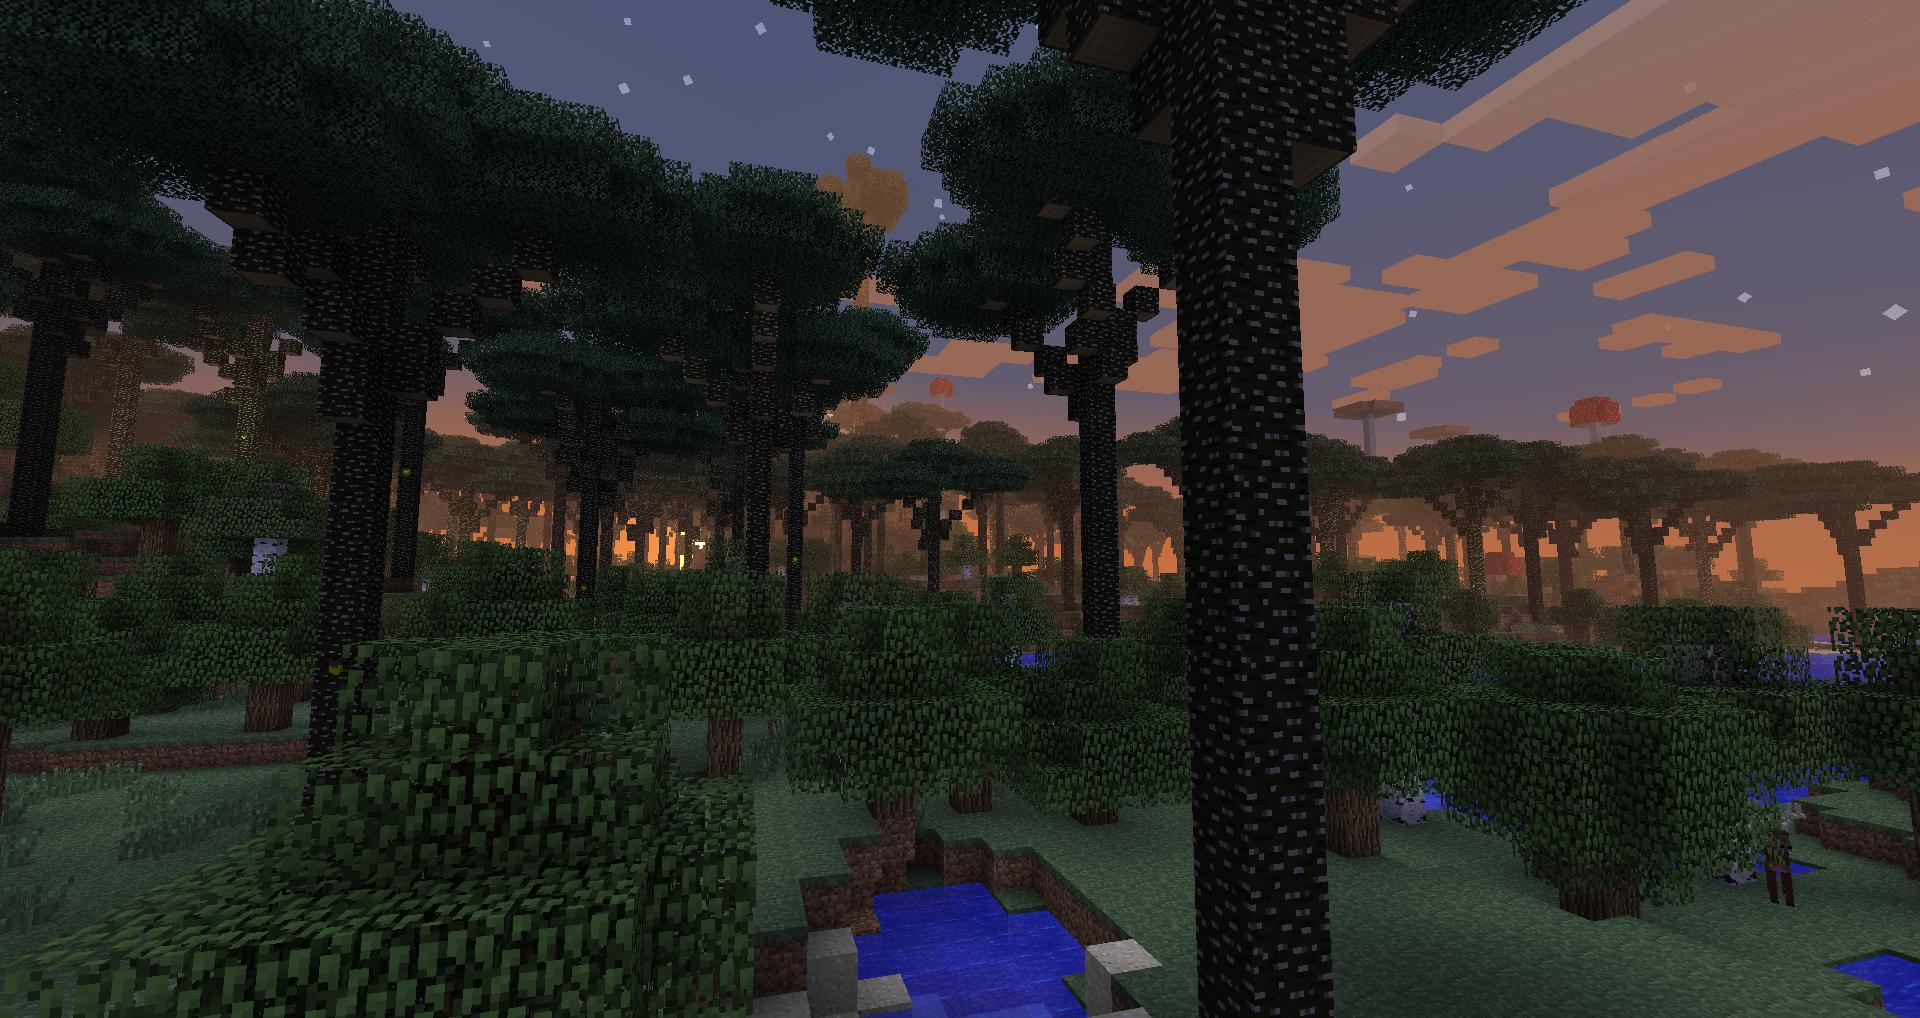 how to get to the twilight forest in minecraft pc